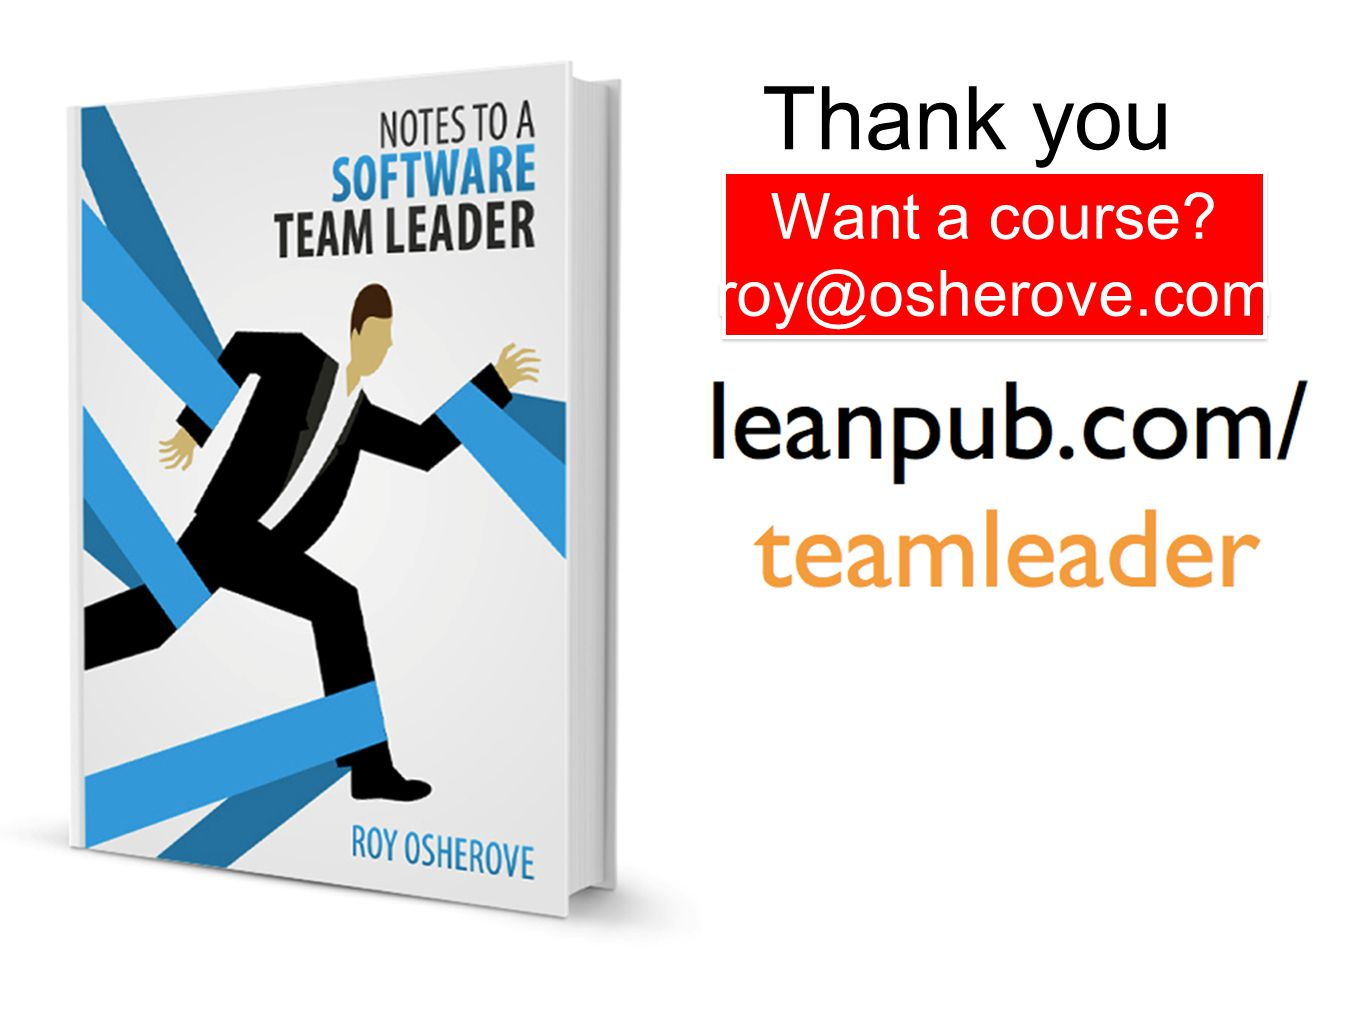 #IWishMyTeam Book: Notes To a Software Team Leader Thank you Want a course? roy@osherove.com Want a course? roy@osherove.com